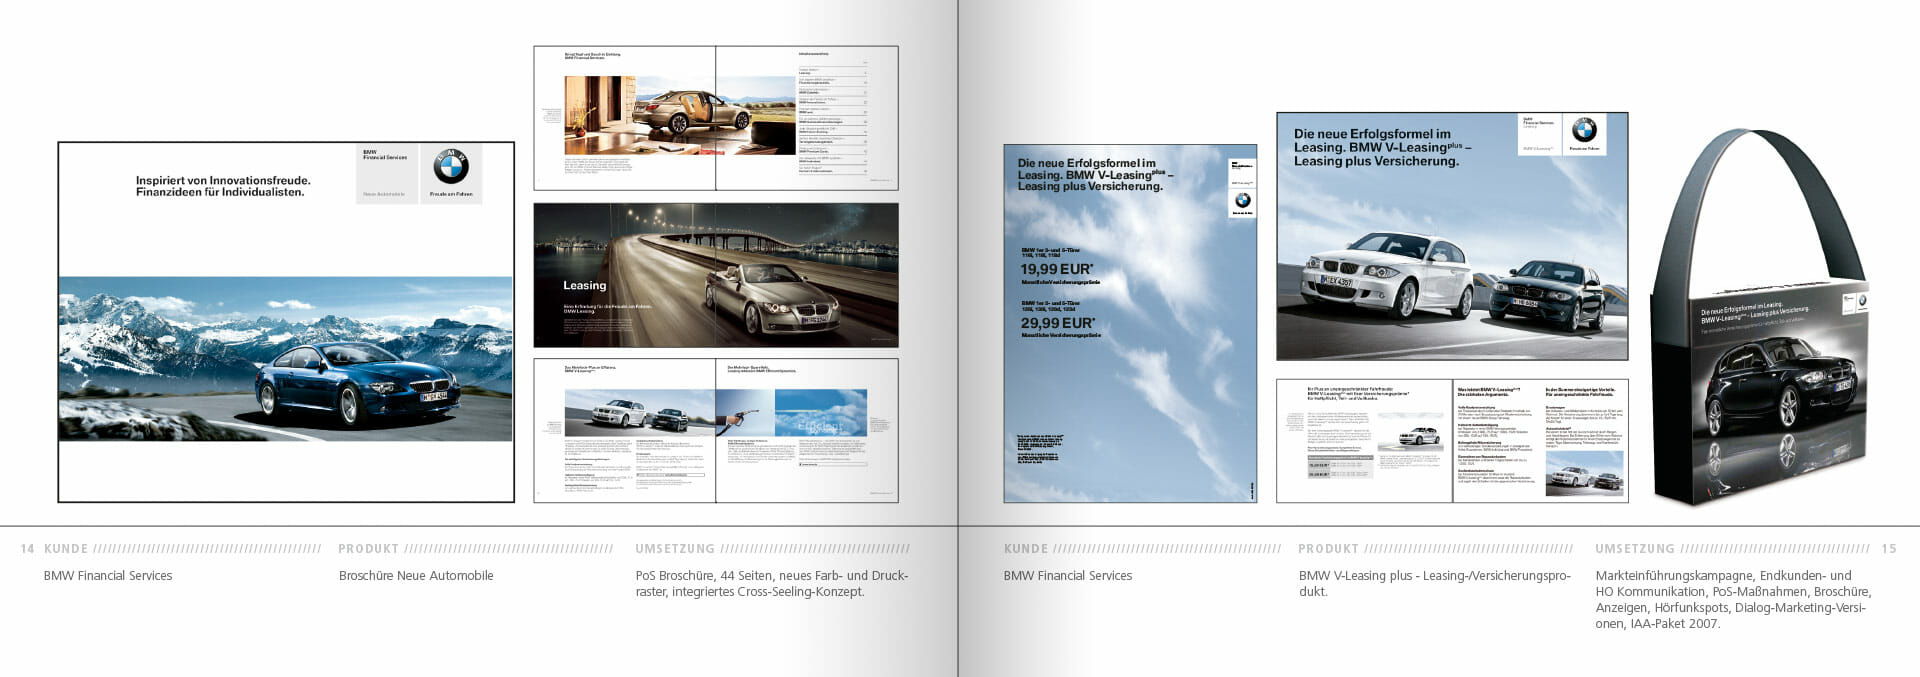 BMW Group Works 2001-2009 Booklet 14-15